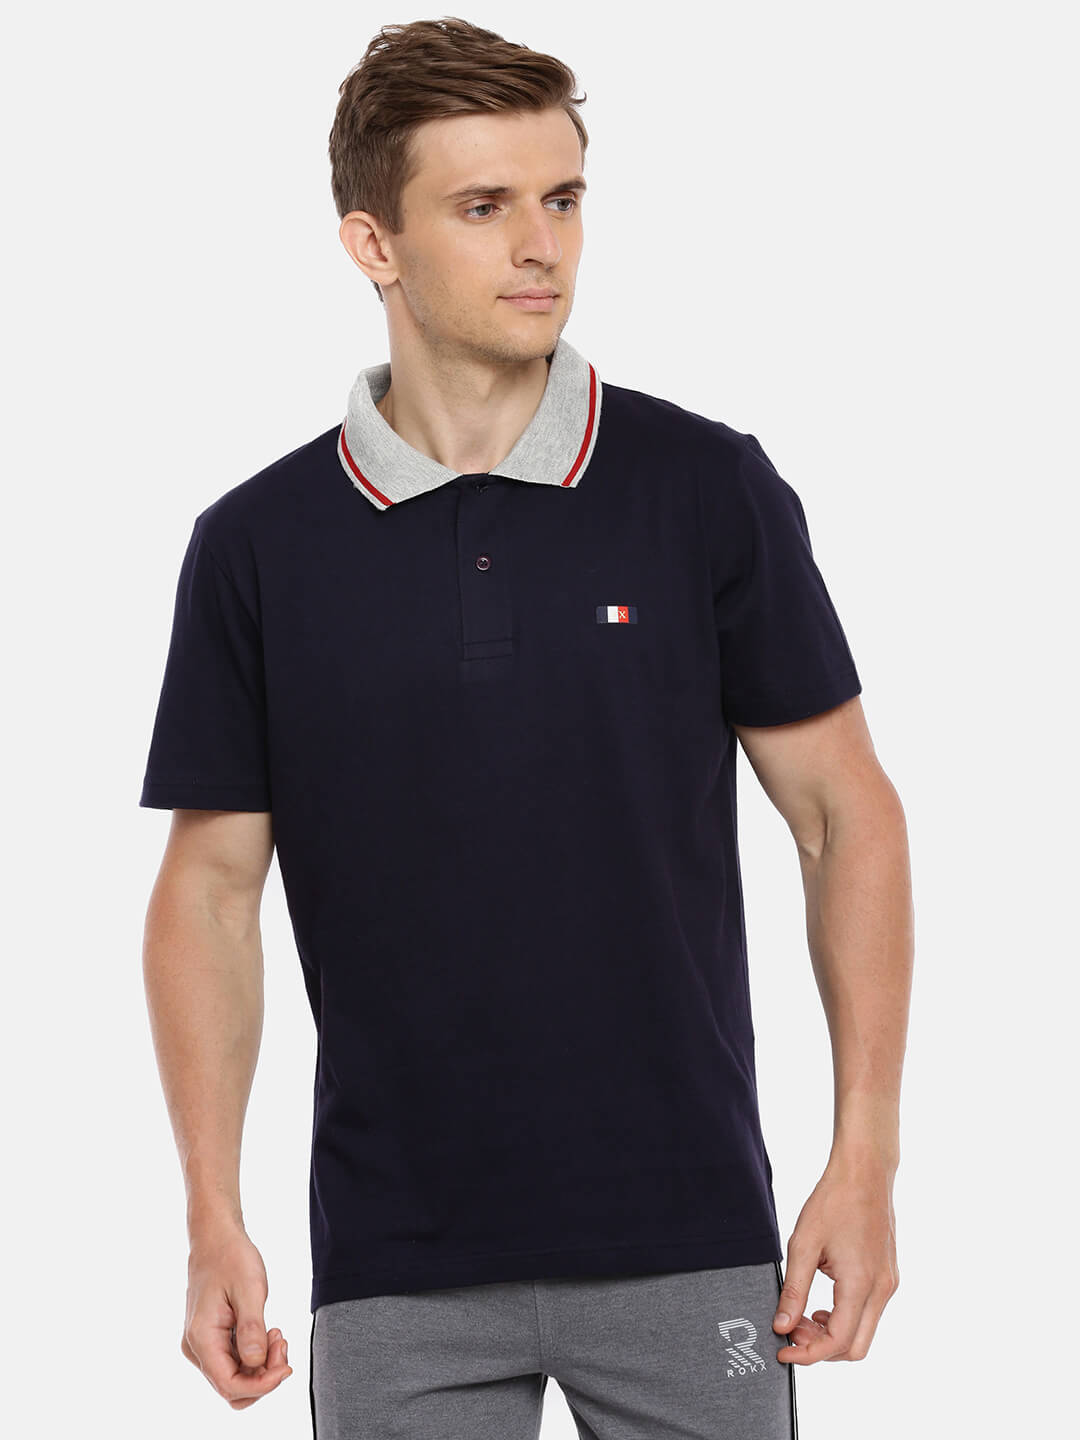 Polo T Shirts For Men - Premium Collar Half Sleeve T-Shirt - Front - Navy Blue